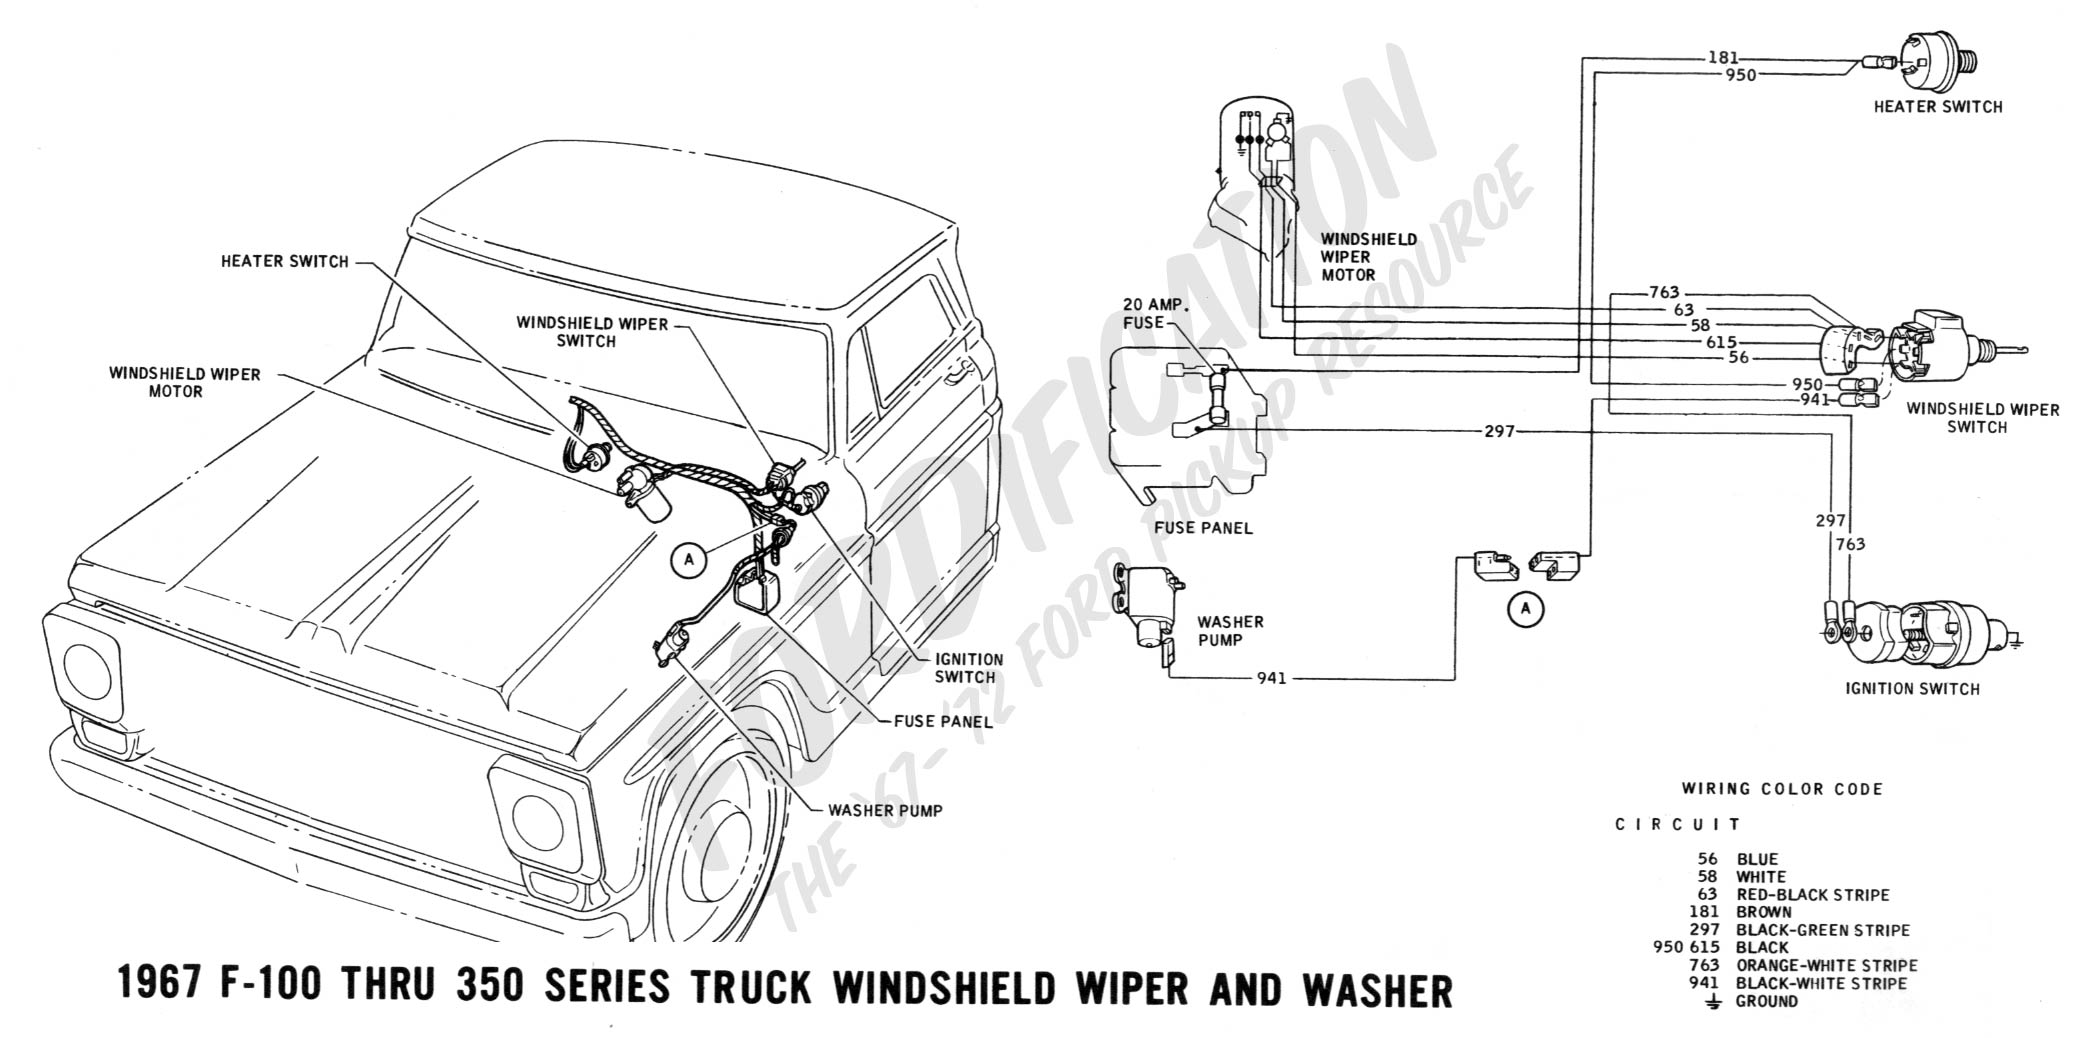 1999 Chevy Cavalier Headlight Wiring Diagram Simple Guide About 2005 For 1995 Ford F350 Wiper Motor